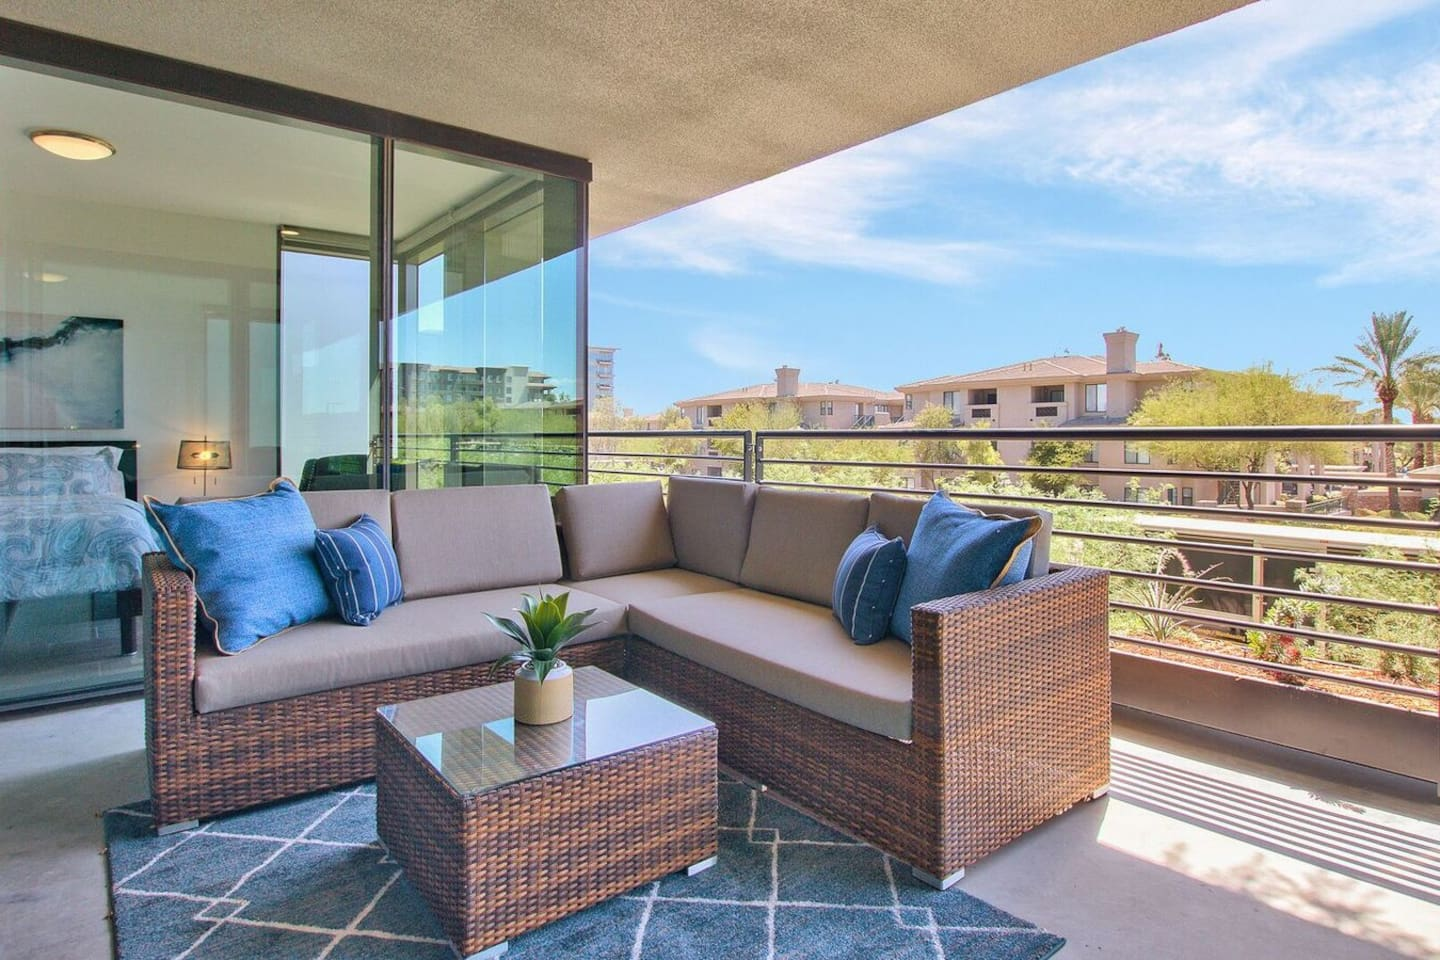 Your rental combines the amenities of a boutique hotel with the comforts and privacy of your own home.